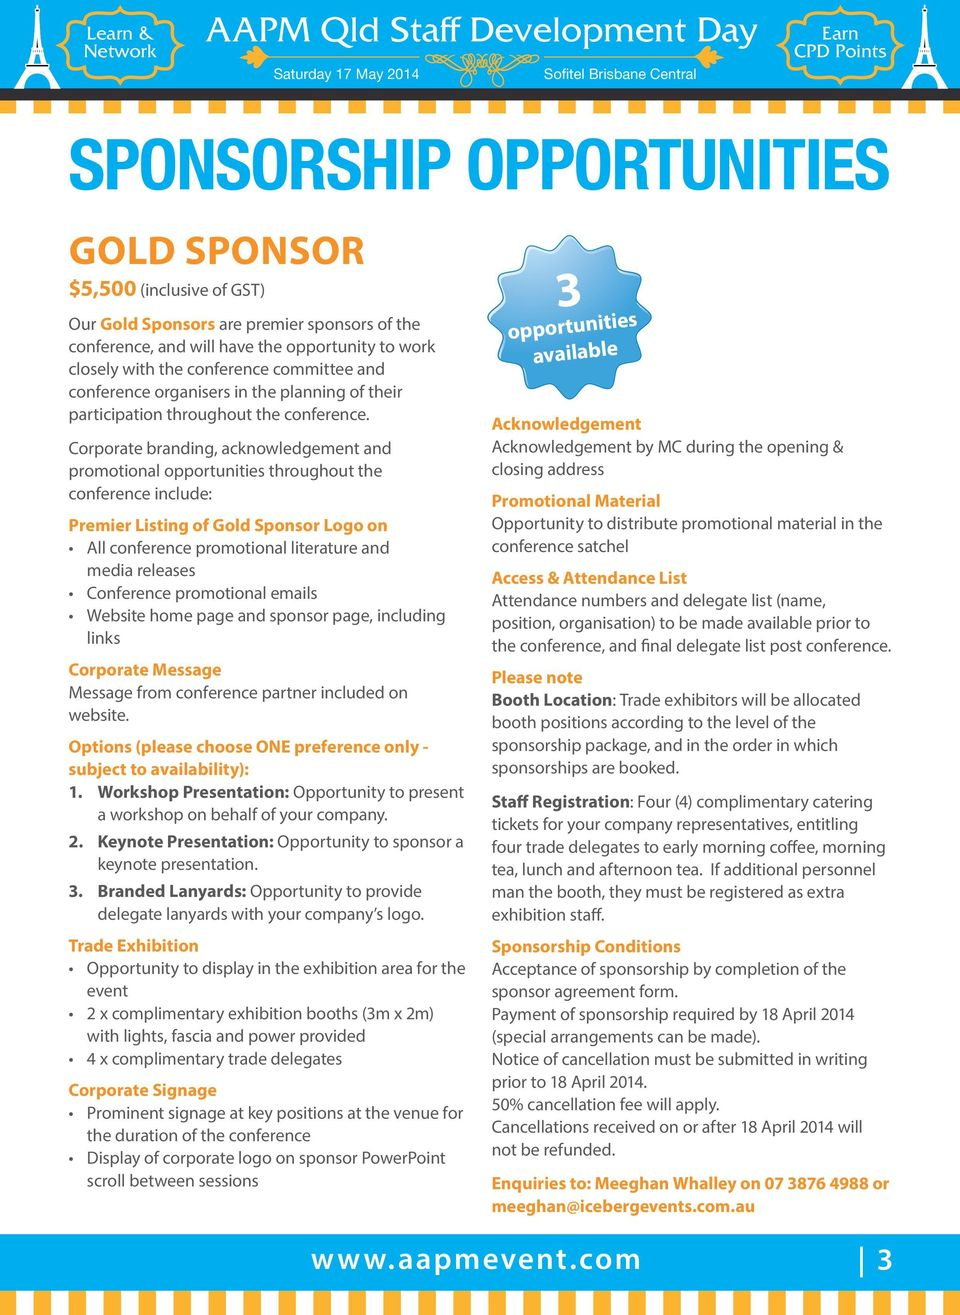 Corporate branding, acknowledgement and promotional opportunities throughout the conference include: Premier Listing of Gold Sponsor Logo on All conference promotional literature and media releases